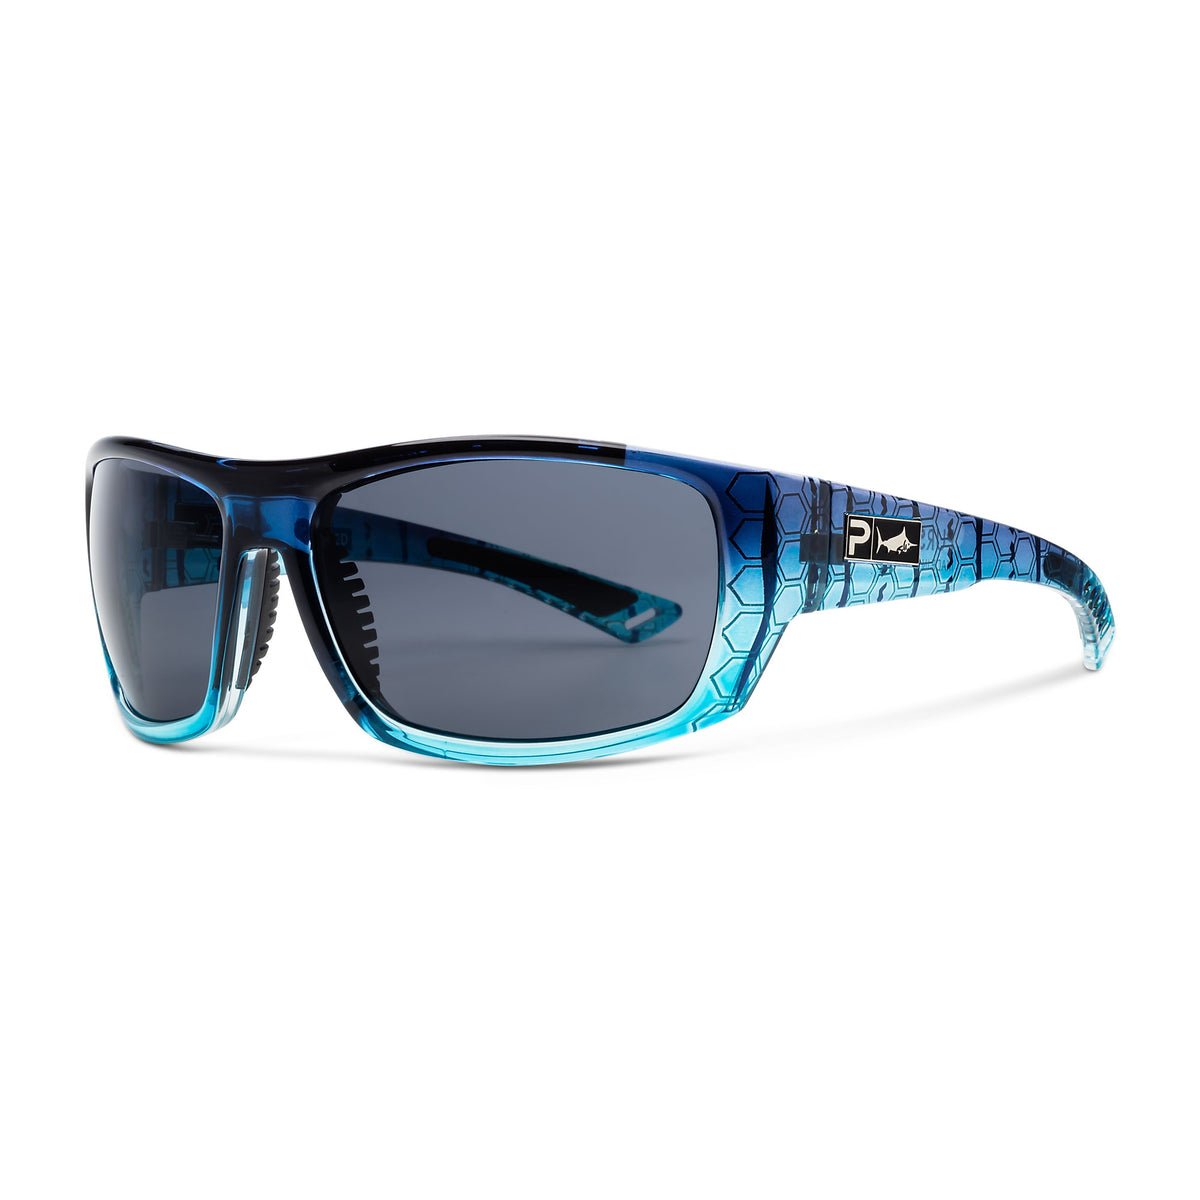 Pursuit - Polarized Polycarbonate Lens Big Image - 4